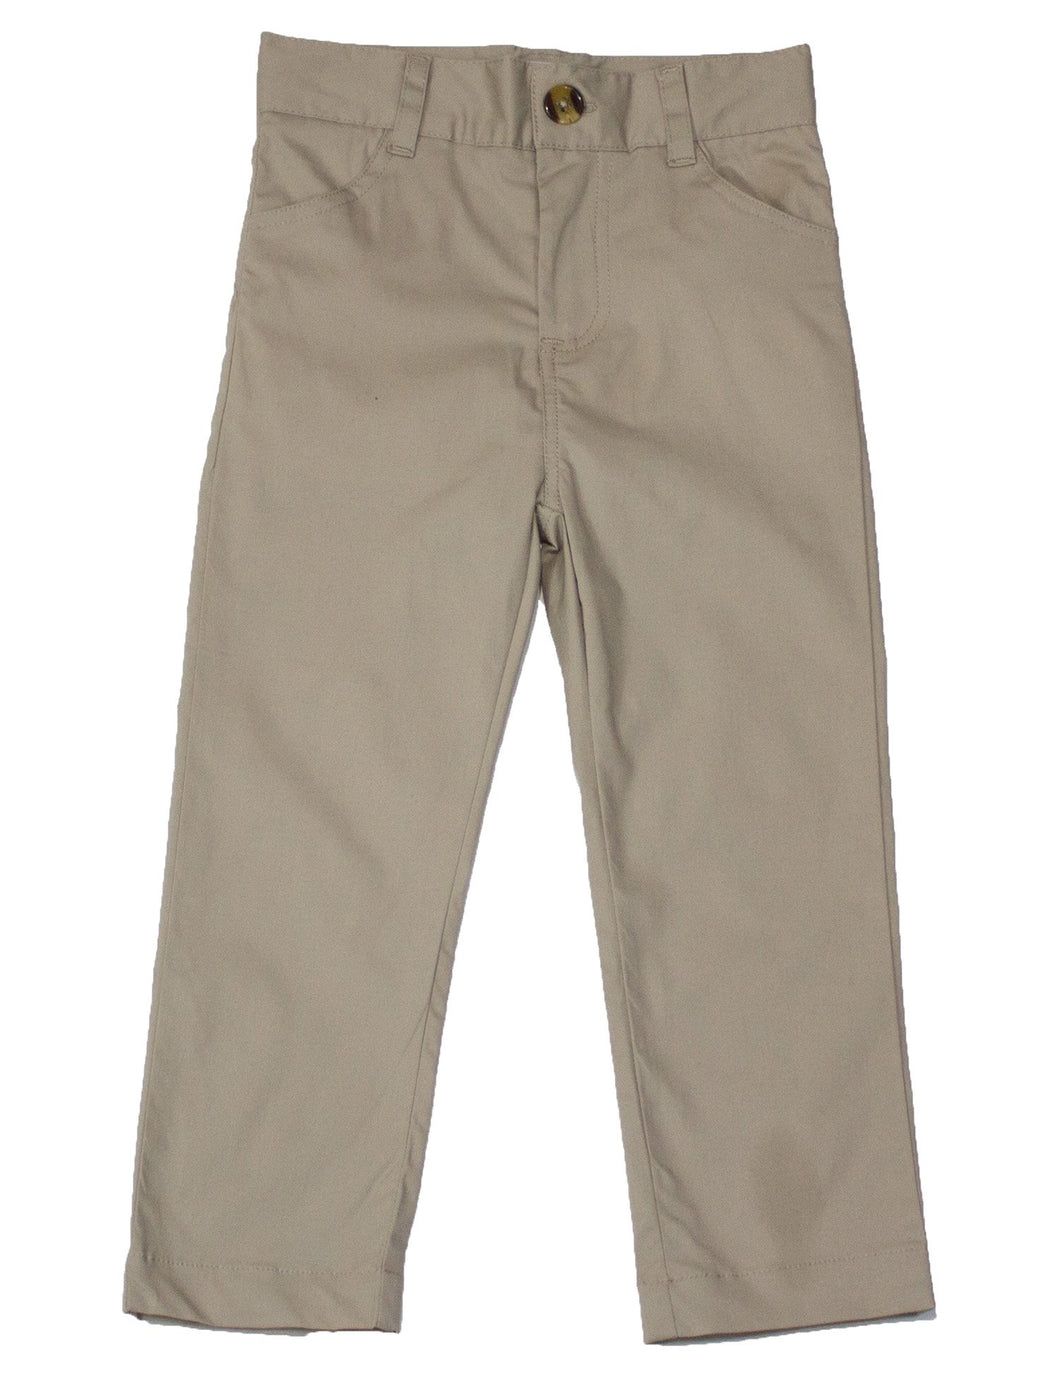 Lil Ducklings Charleston Pant Khaki